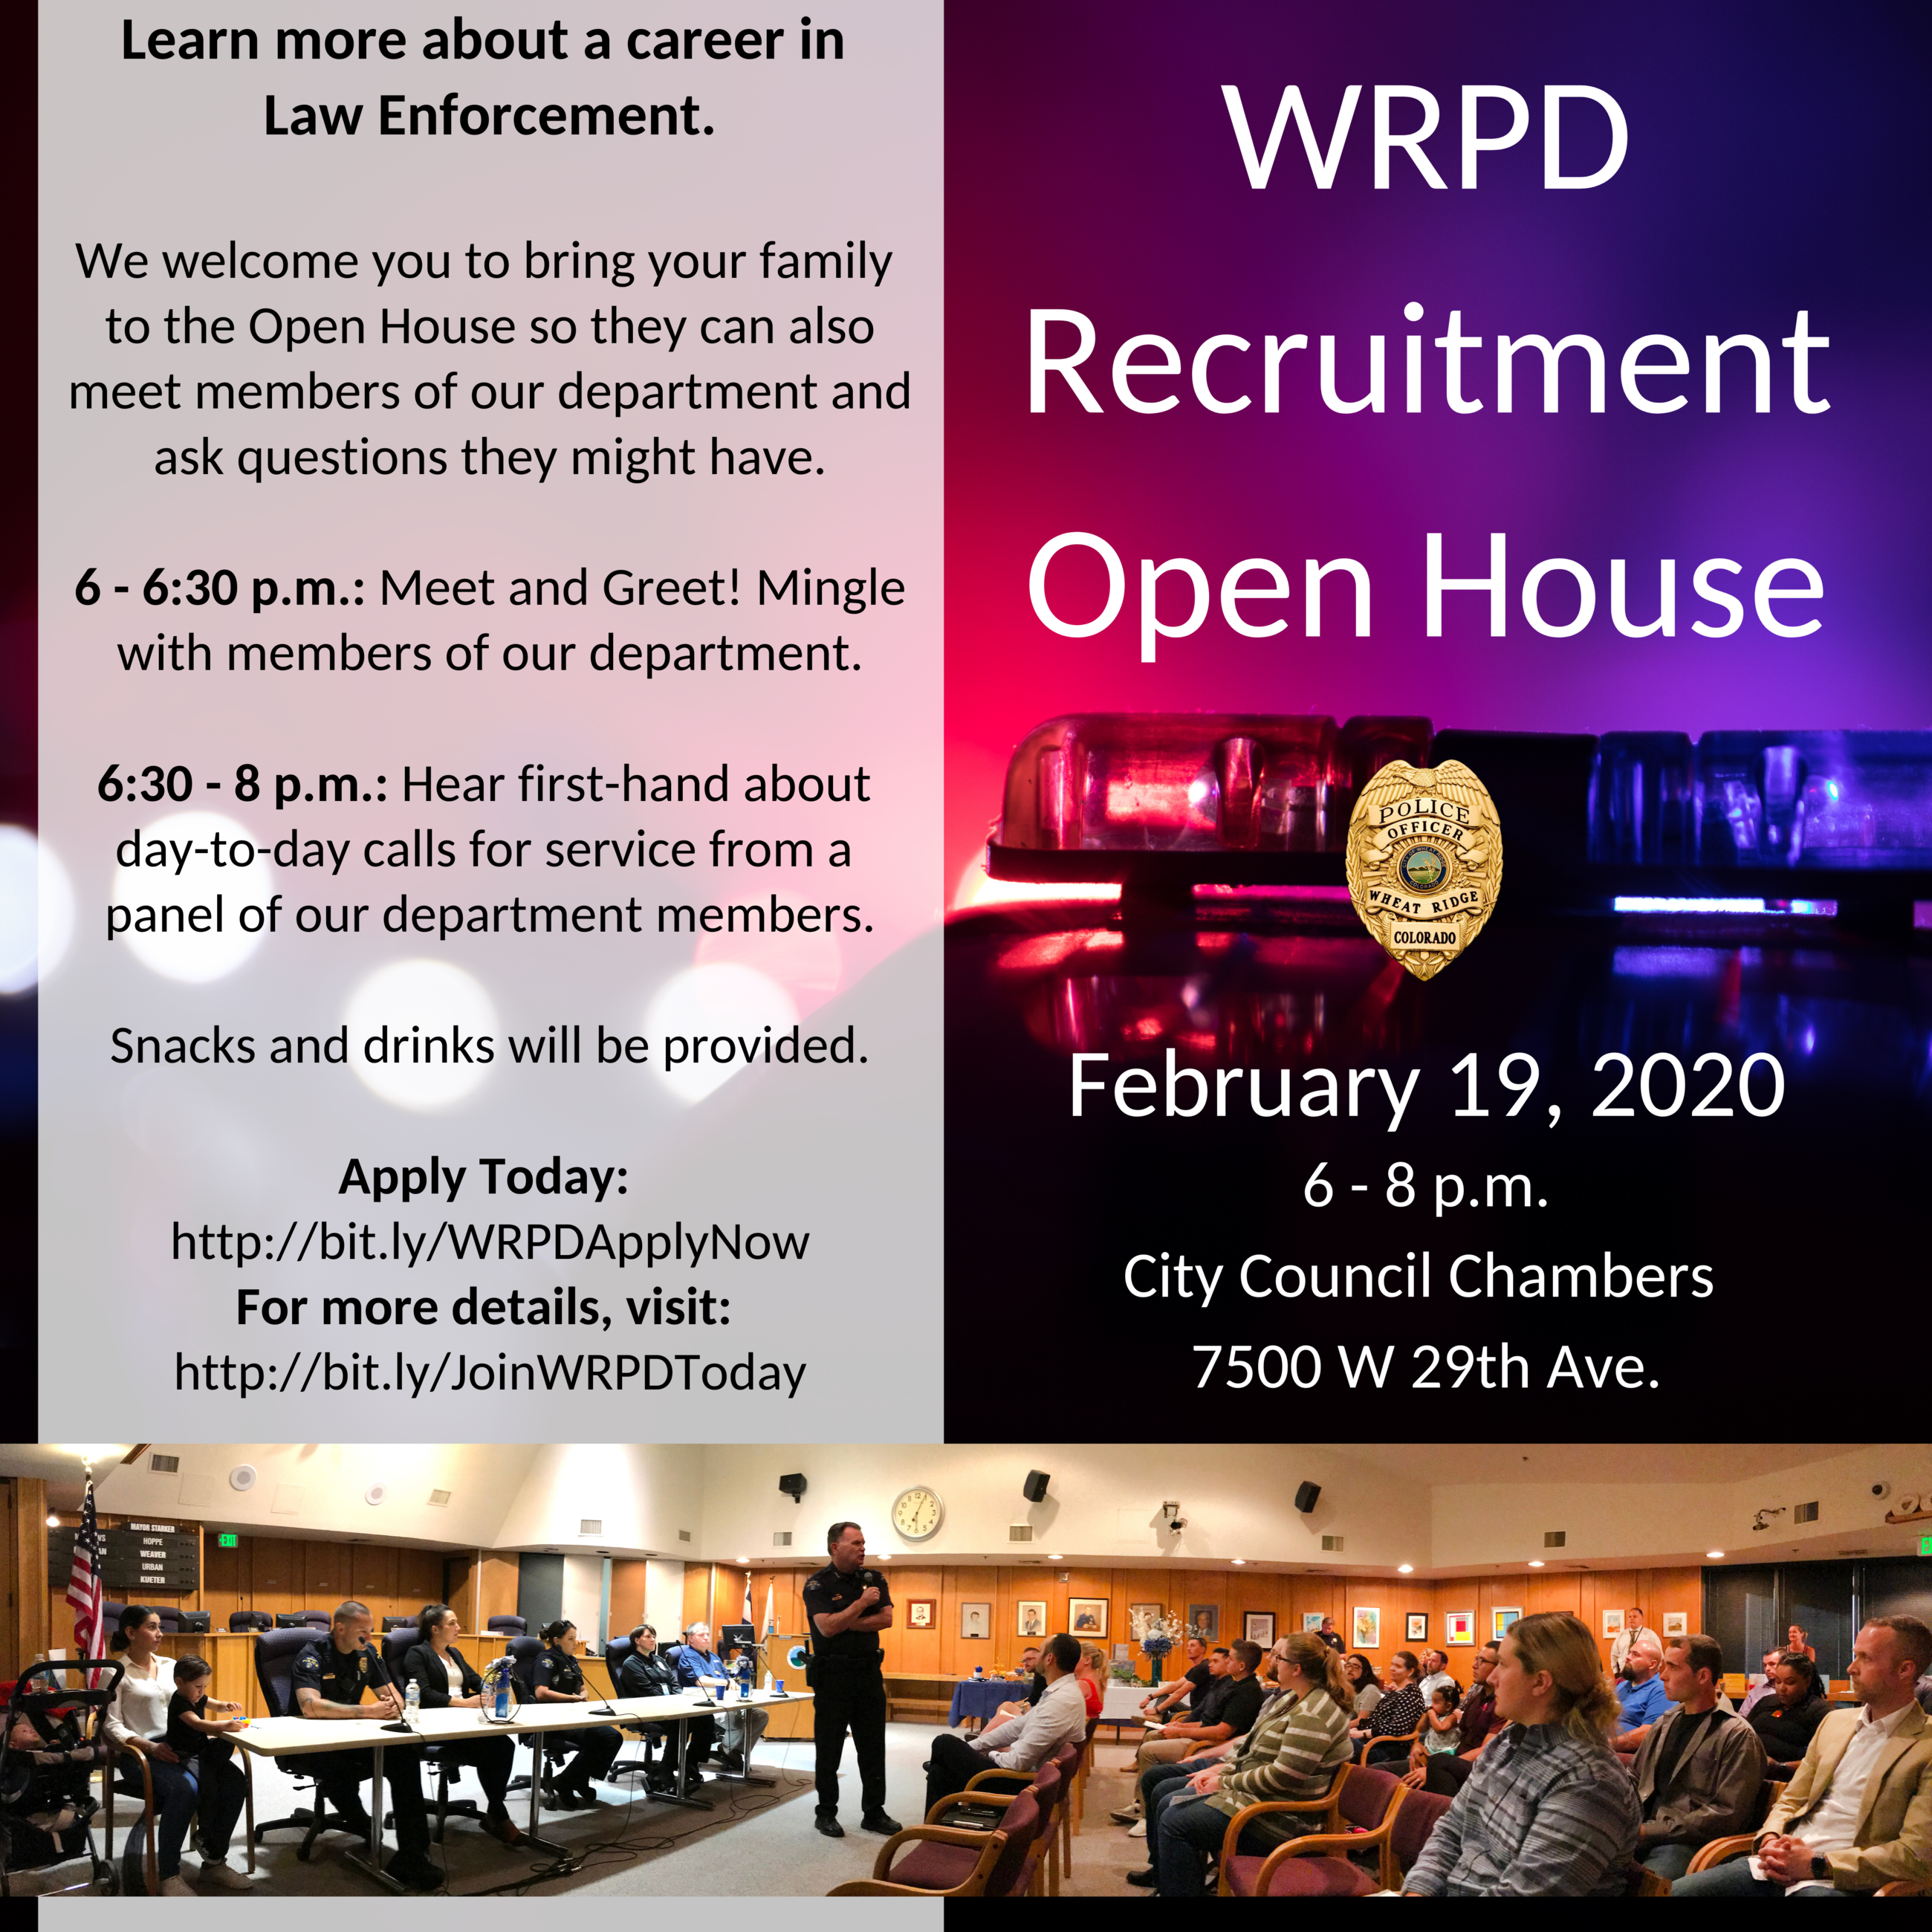 WRPD Recruitment Open House Feb 2020